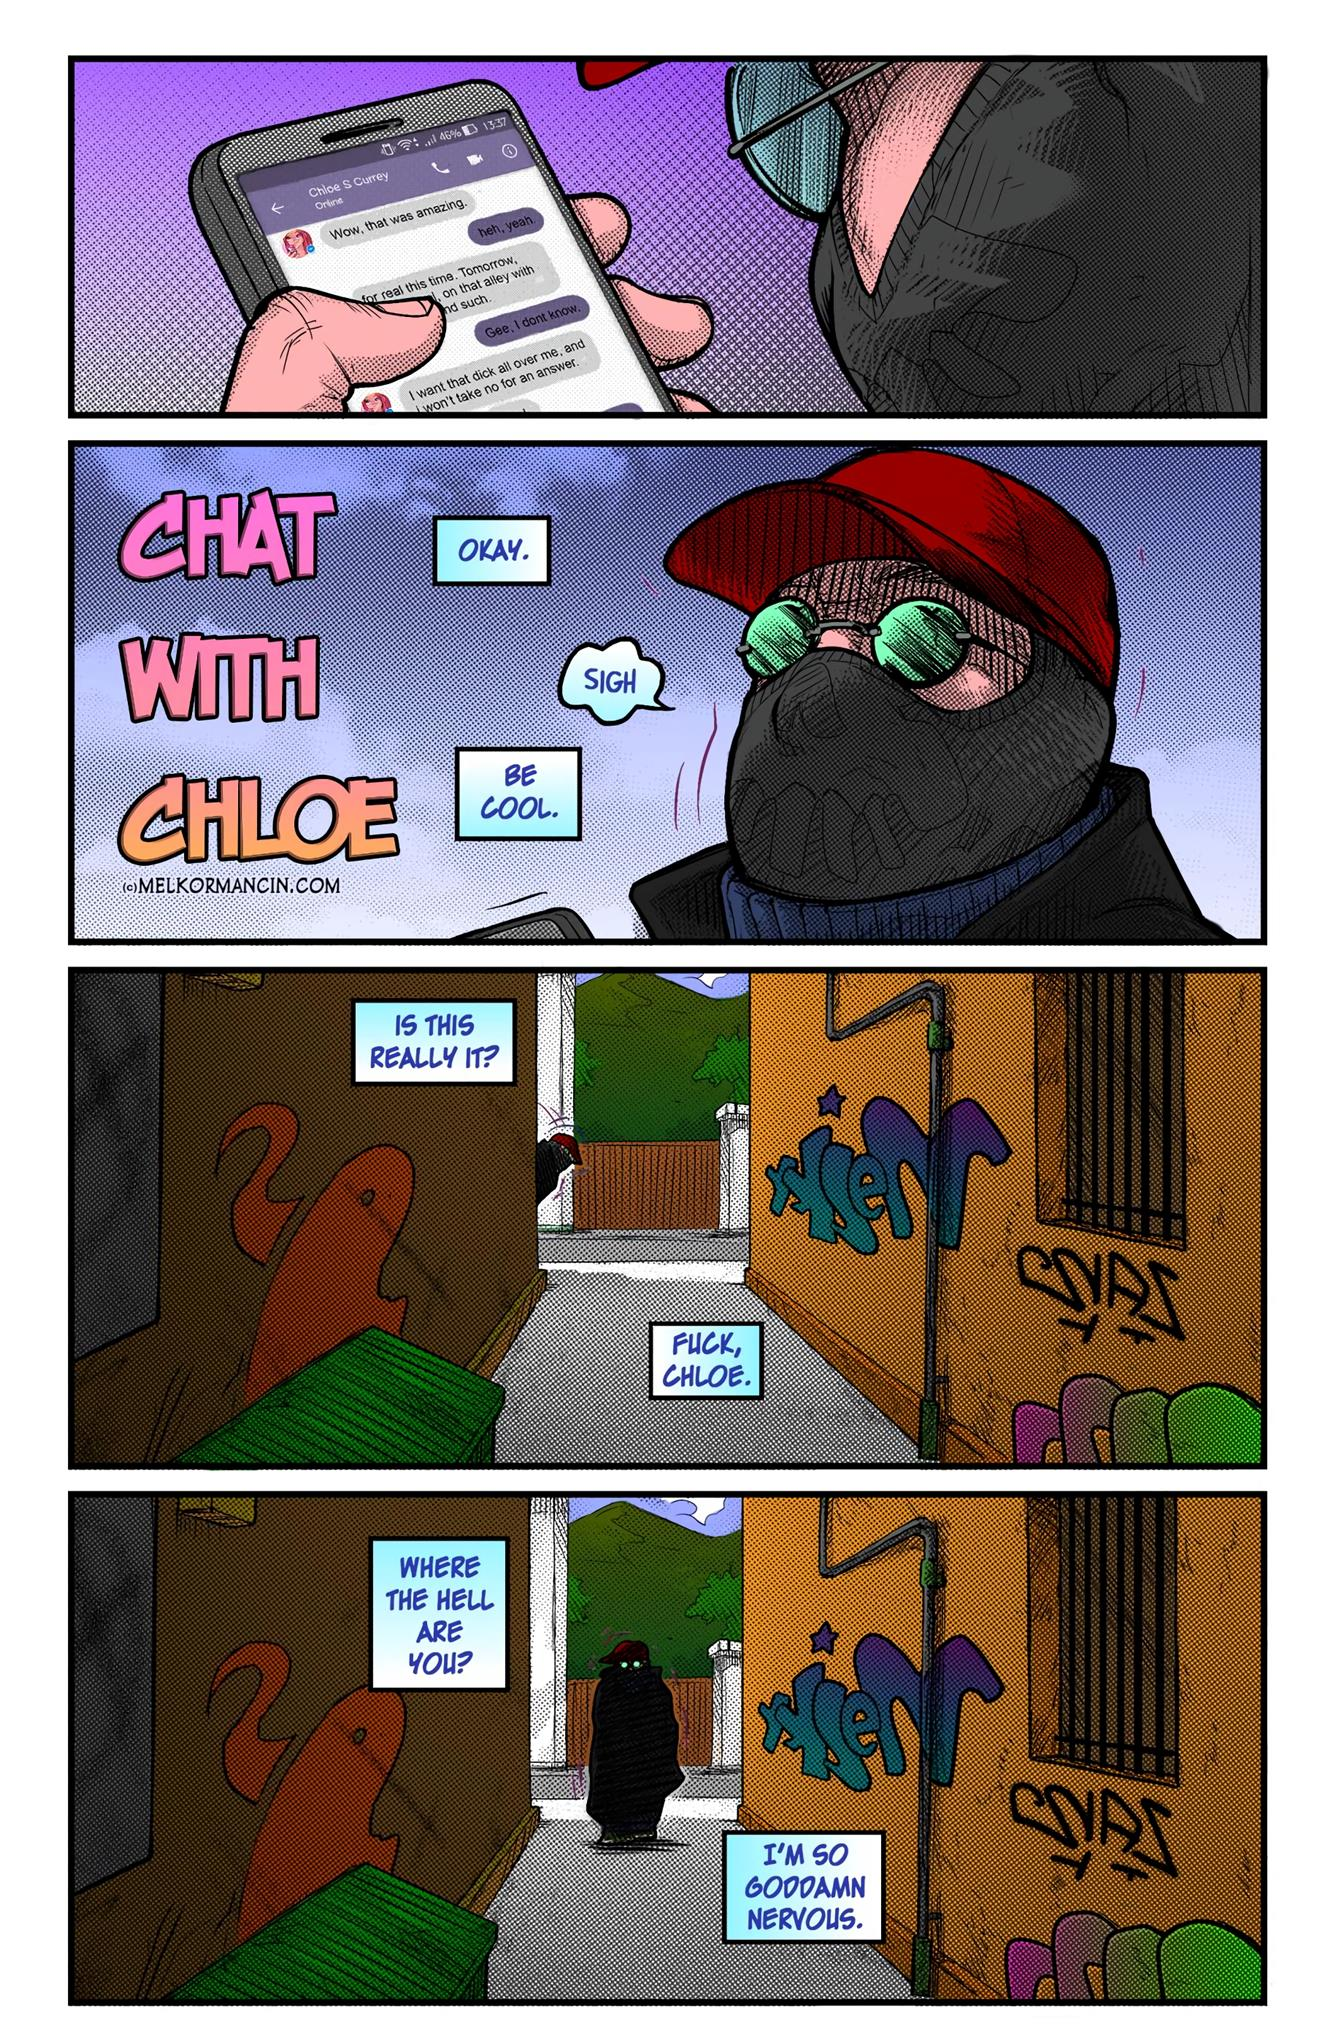 Chat with Chloe